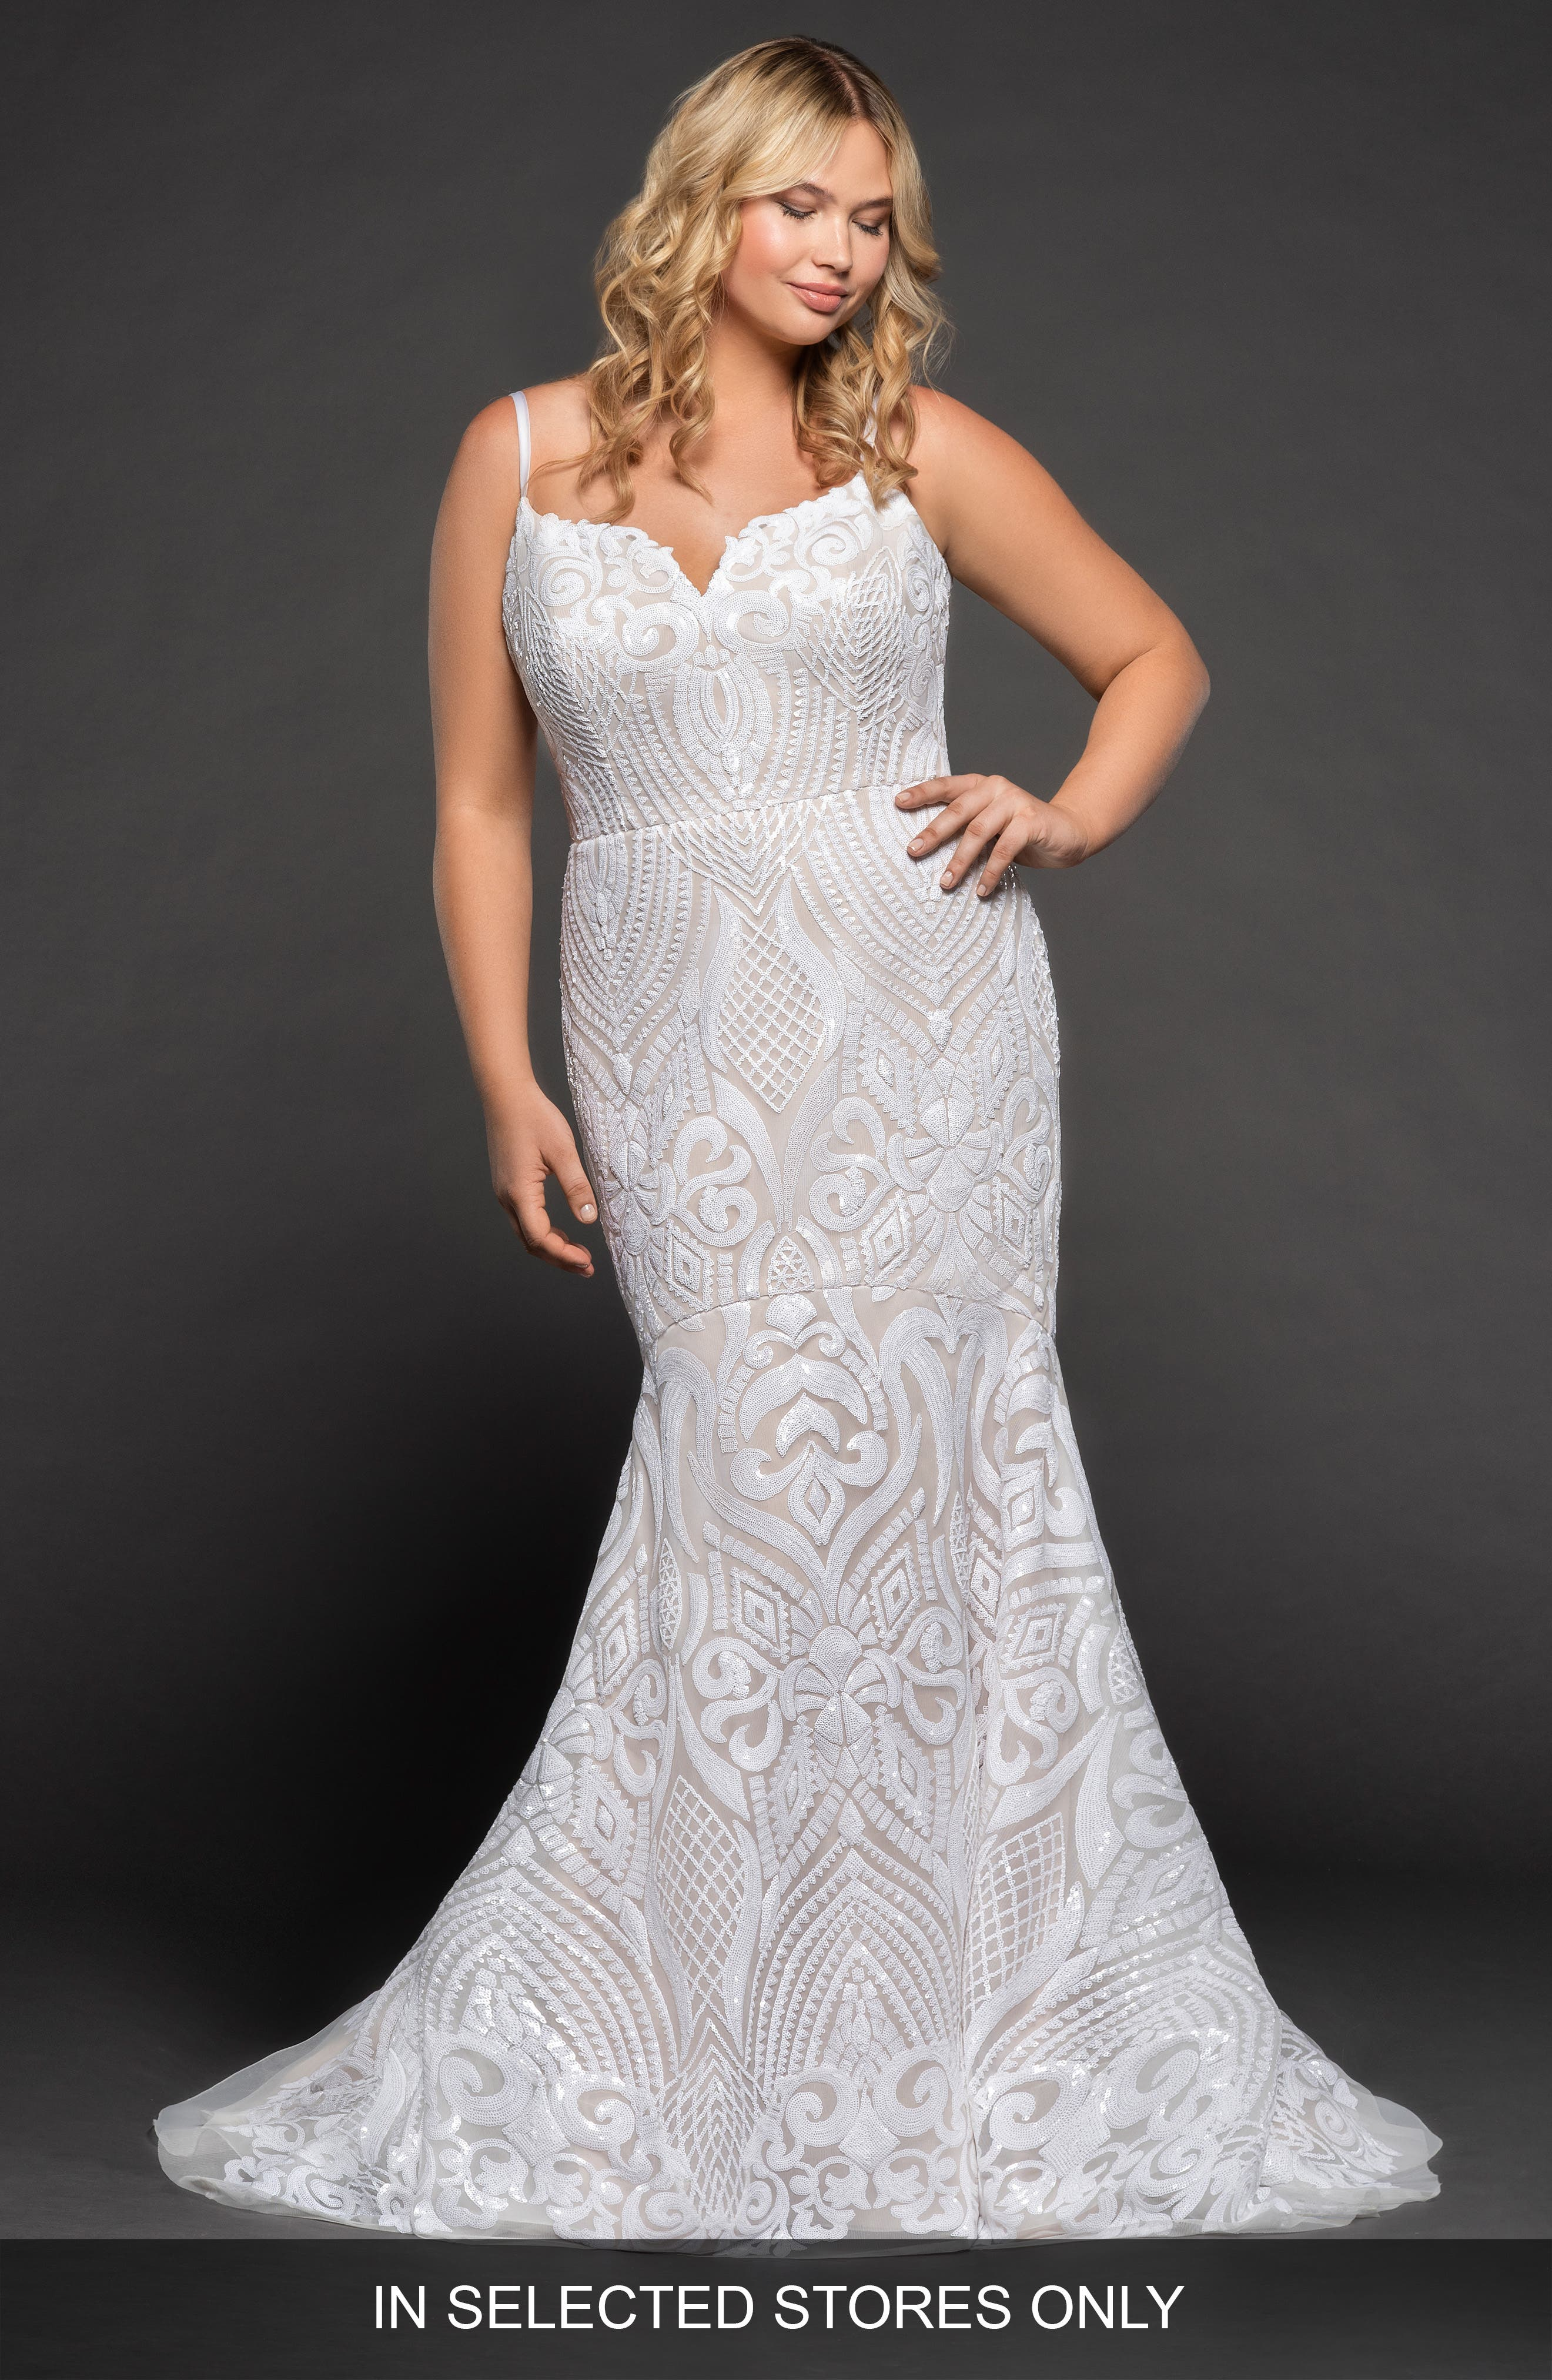 West Mermaid Gown,                         Main,                         color, SOLID IVORY